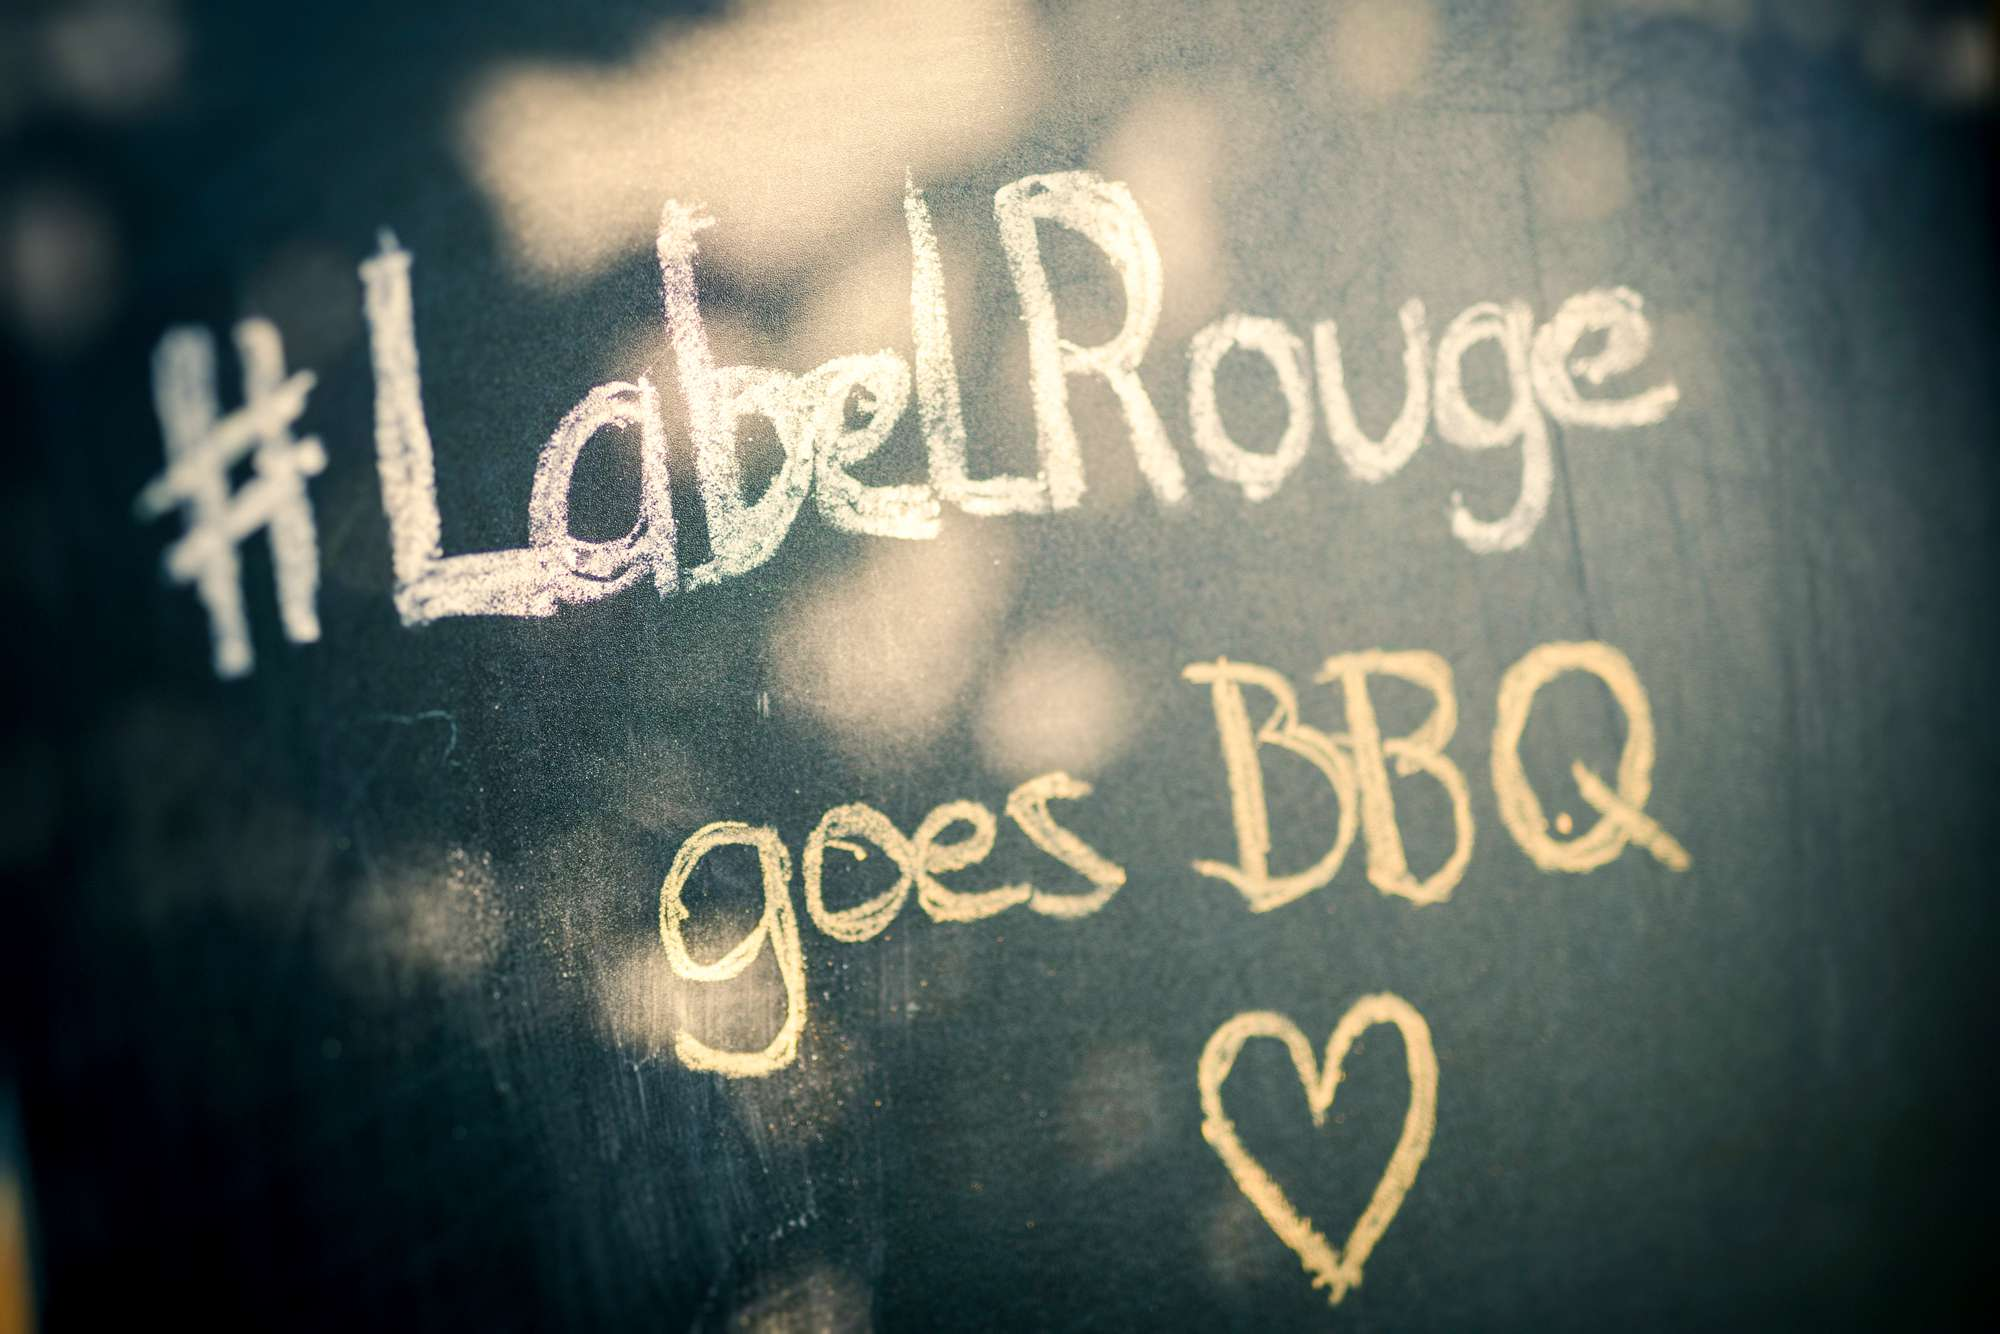 Label Rouge goes BBQ